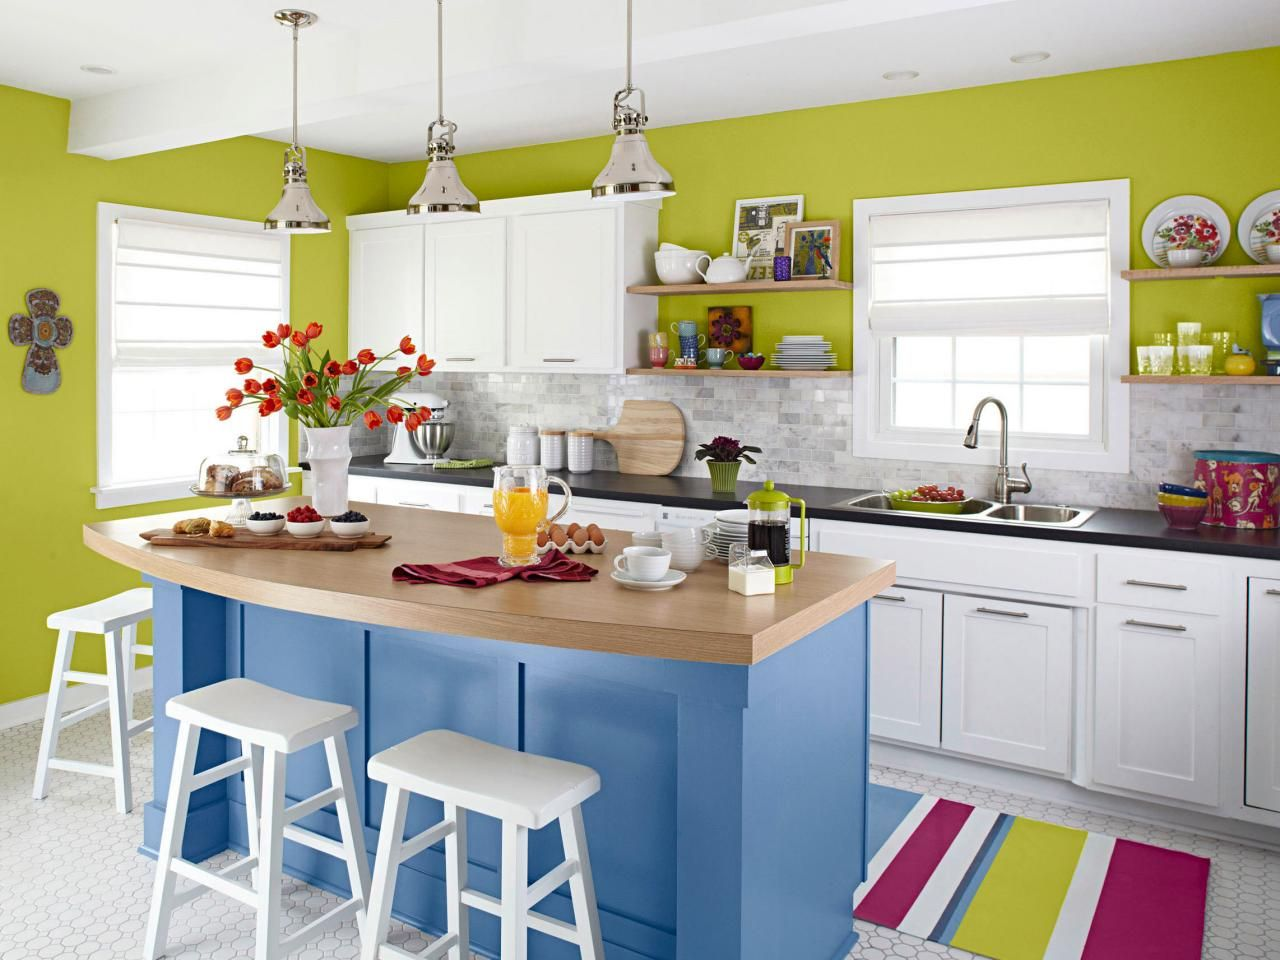 Small Kitchen Design Smart Layouts & Storage Photos  Kitchens Inspiration Small Kitchen Island Design Ideas Design Inspiration